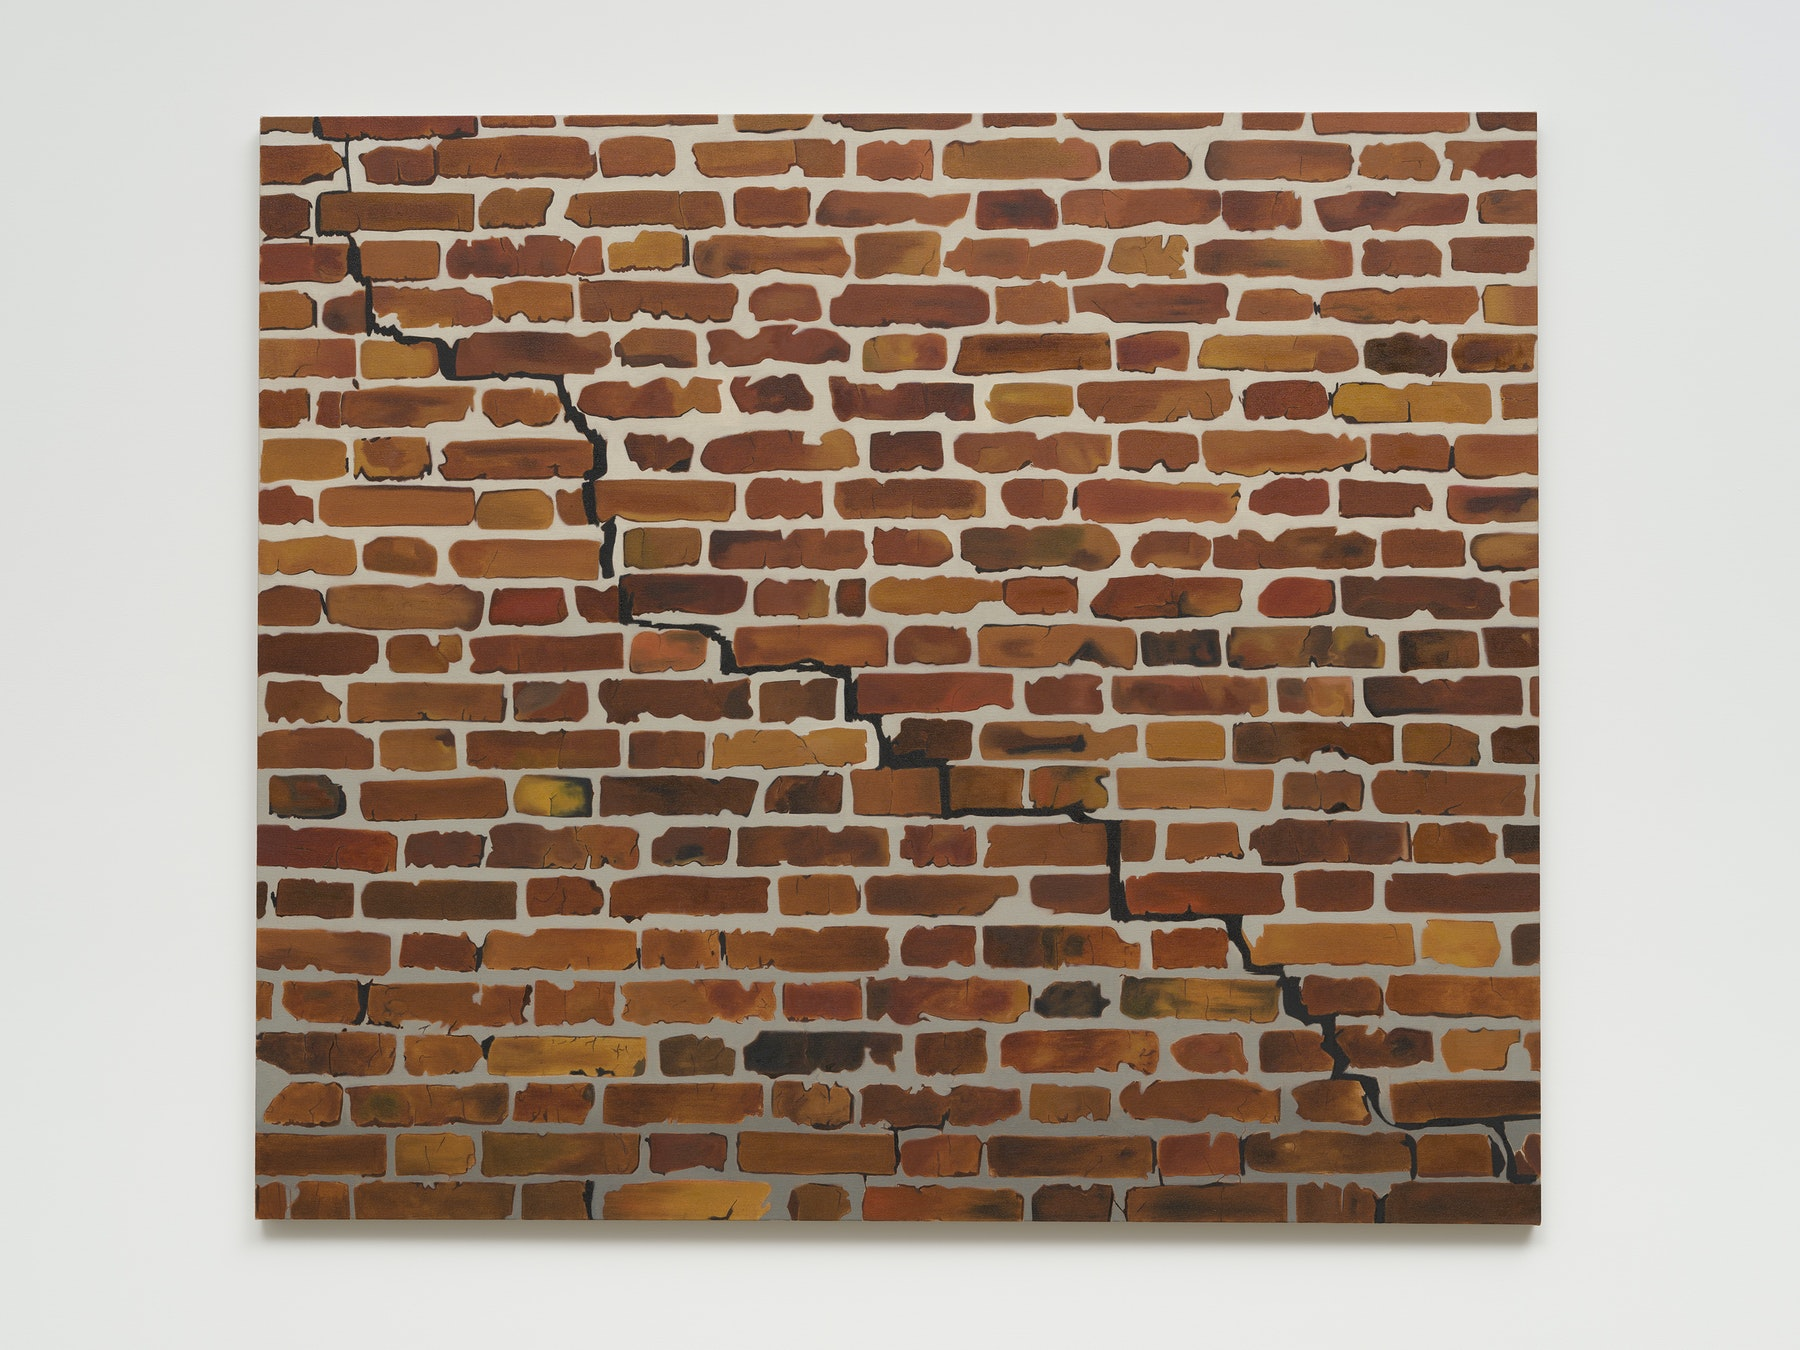 """Math Bass """"Brick wall,"""" 2021 Oil on linen 52 x 60 x 1.25"""" [HxWxD] (132.08 x 152.4 x 3.18 cm) Inventory #BAS1037 Courtesy of the artist and Vielmetter Los Angeles Photo credit: Jeff Mclane"""